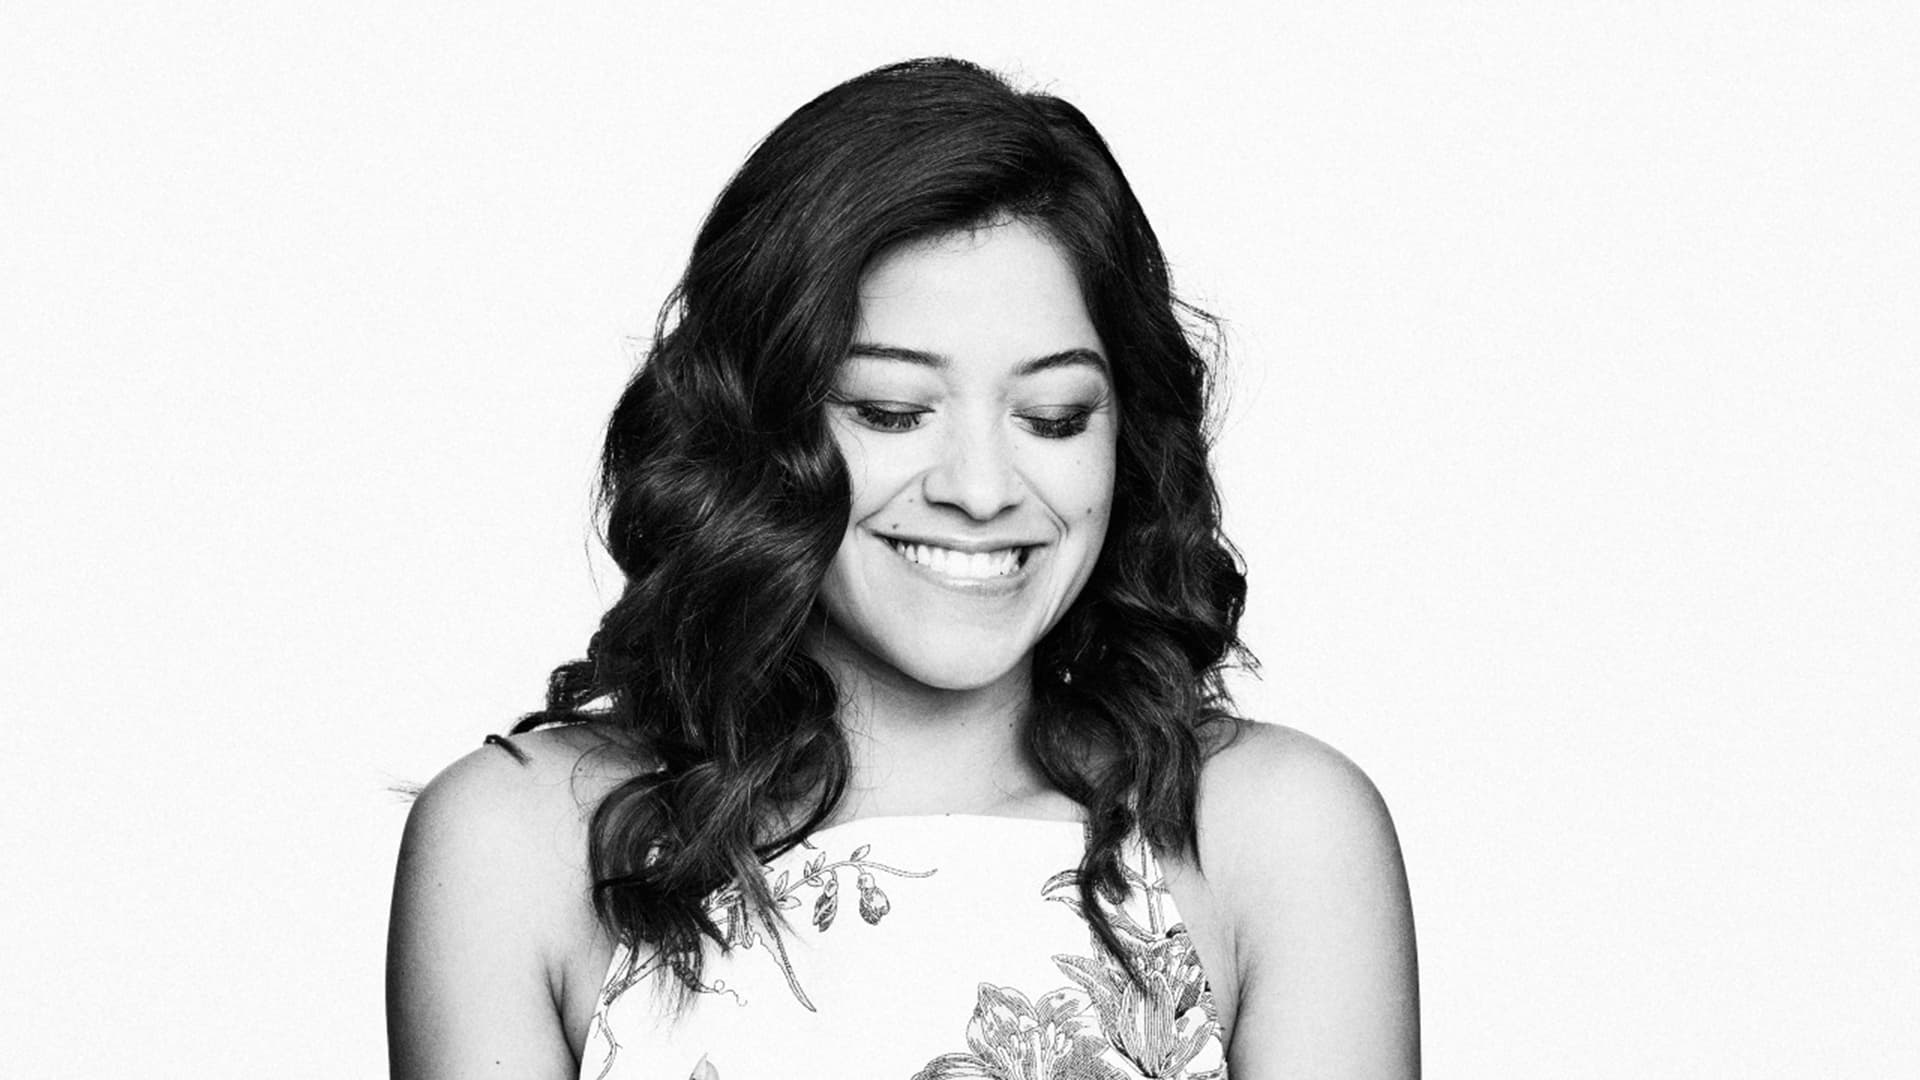 Gina Rodriguez Wallpapers Hd High Quality Download